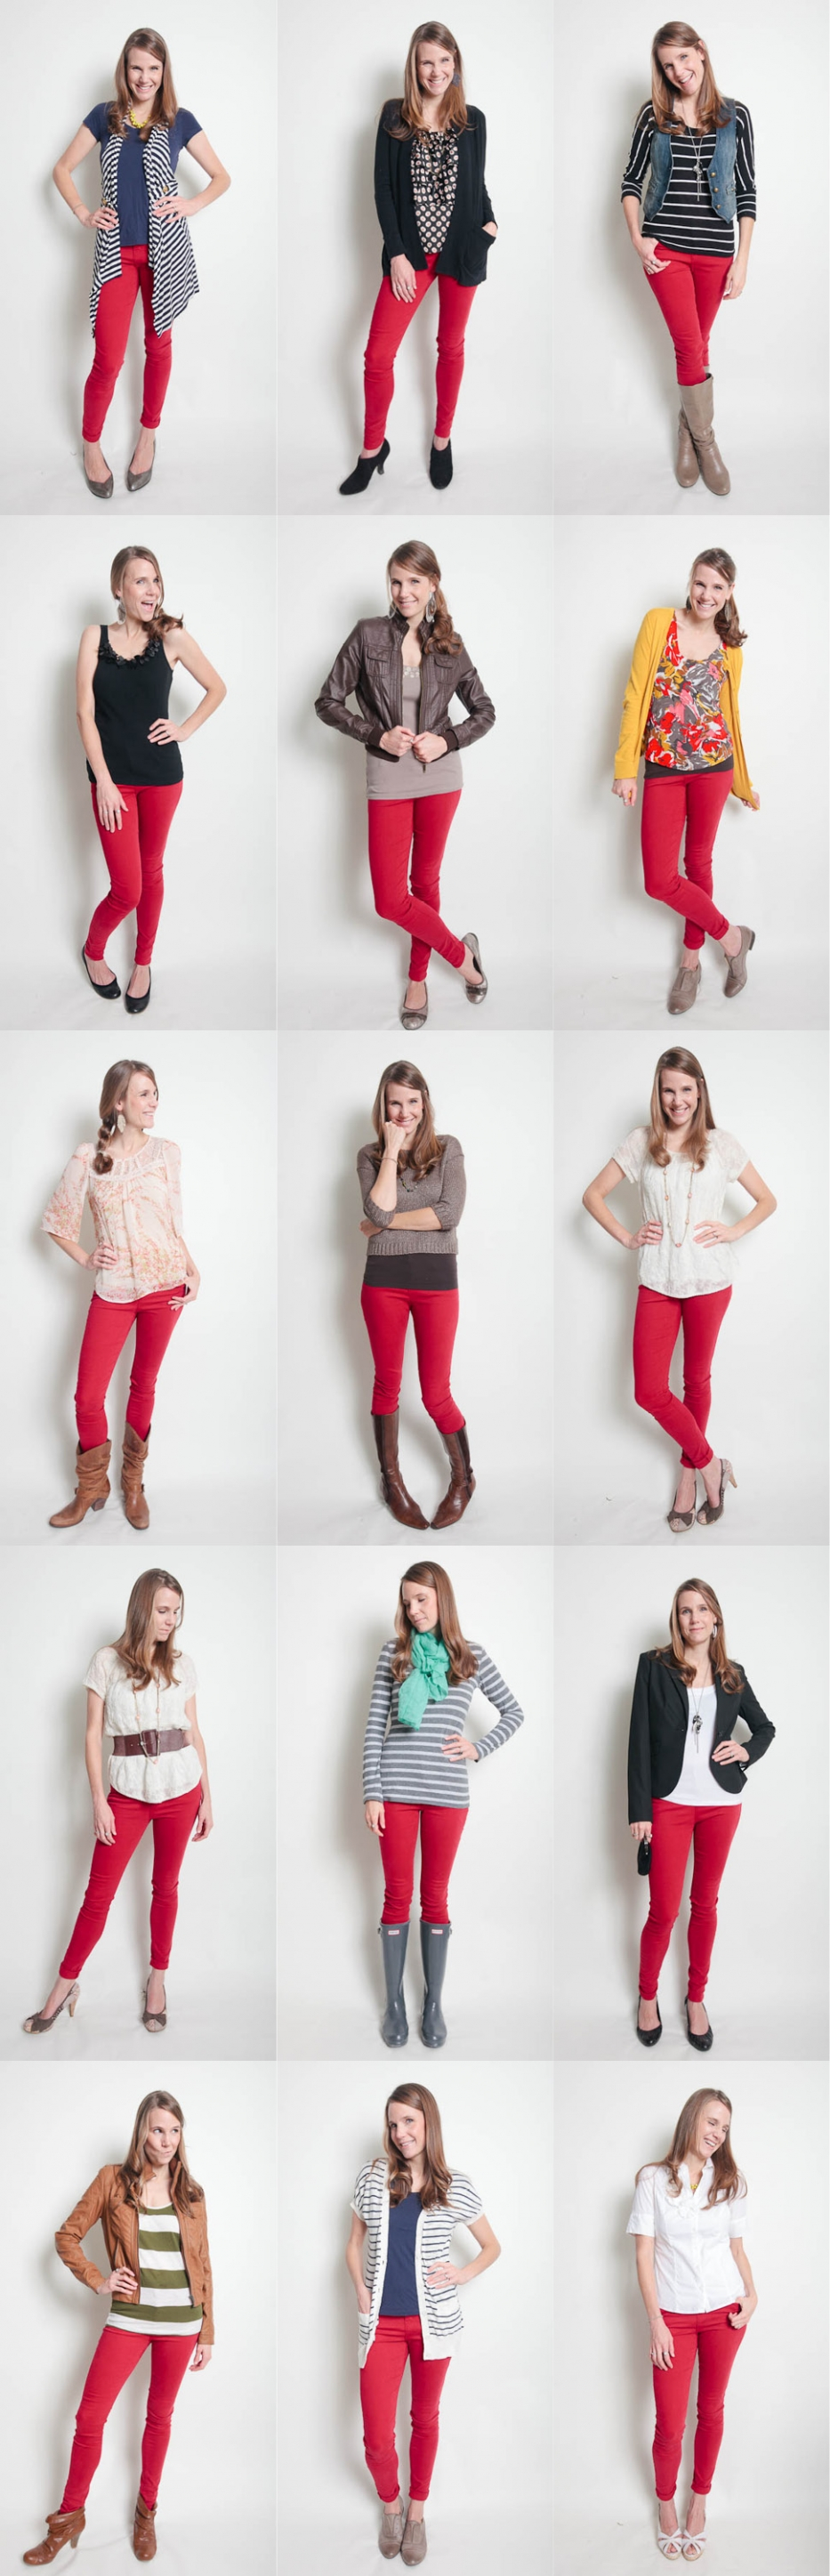 red-jeans-project